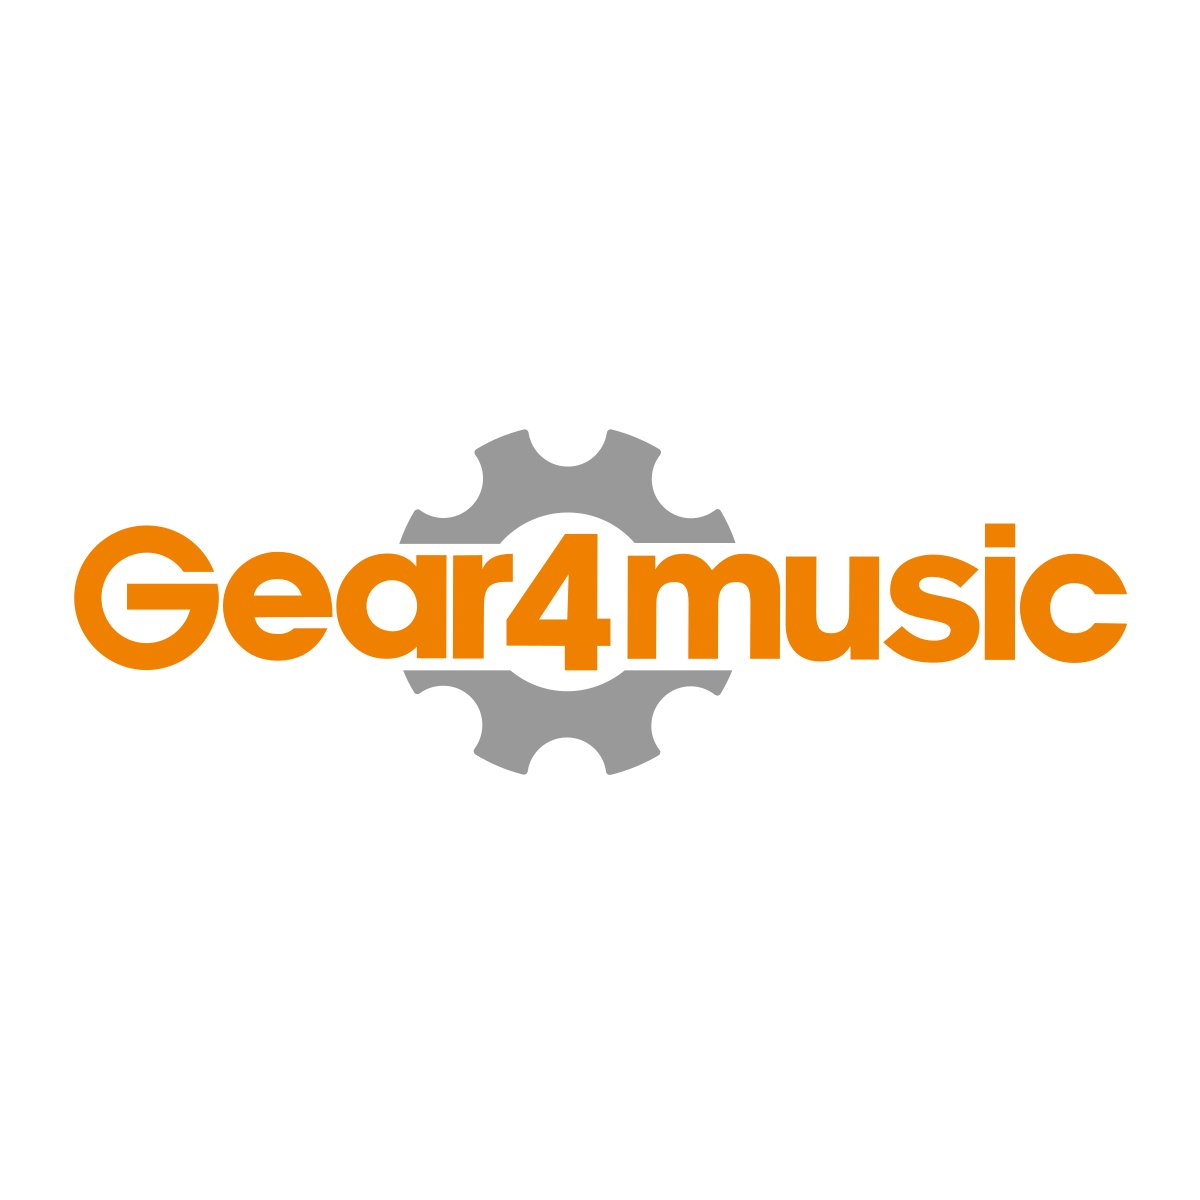 MK-2000 54-key Portable Keyboard by Gear4music - Complete Pack